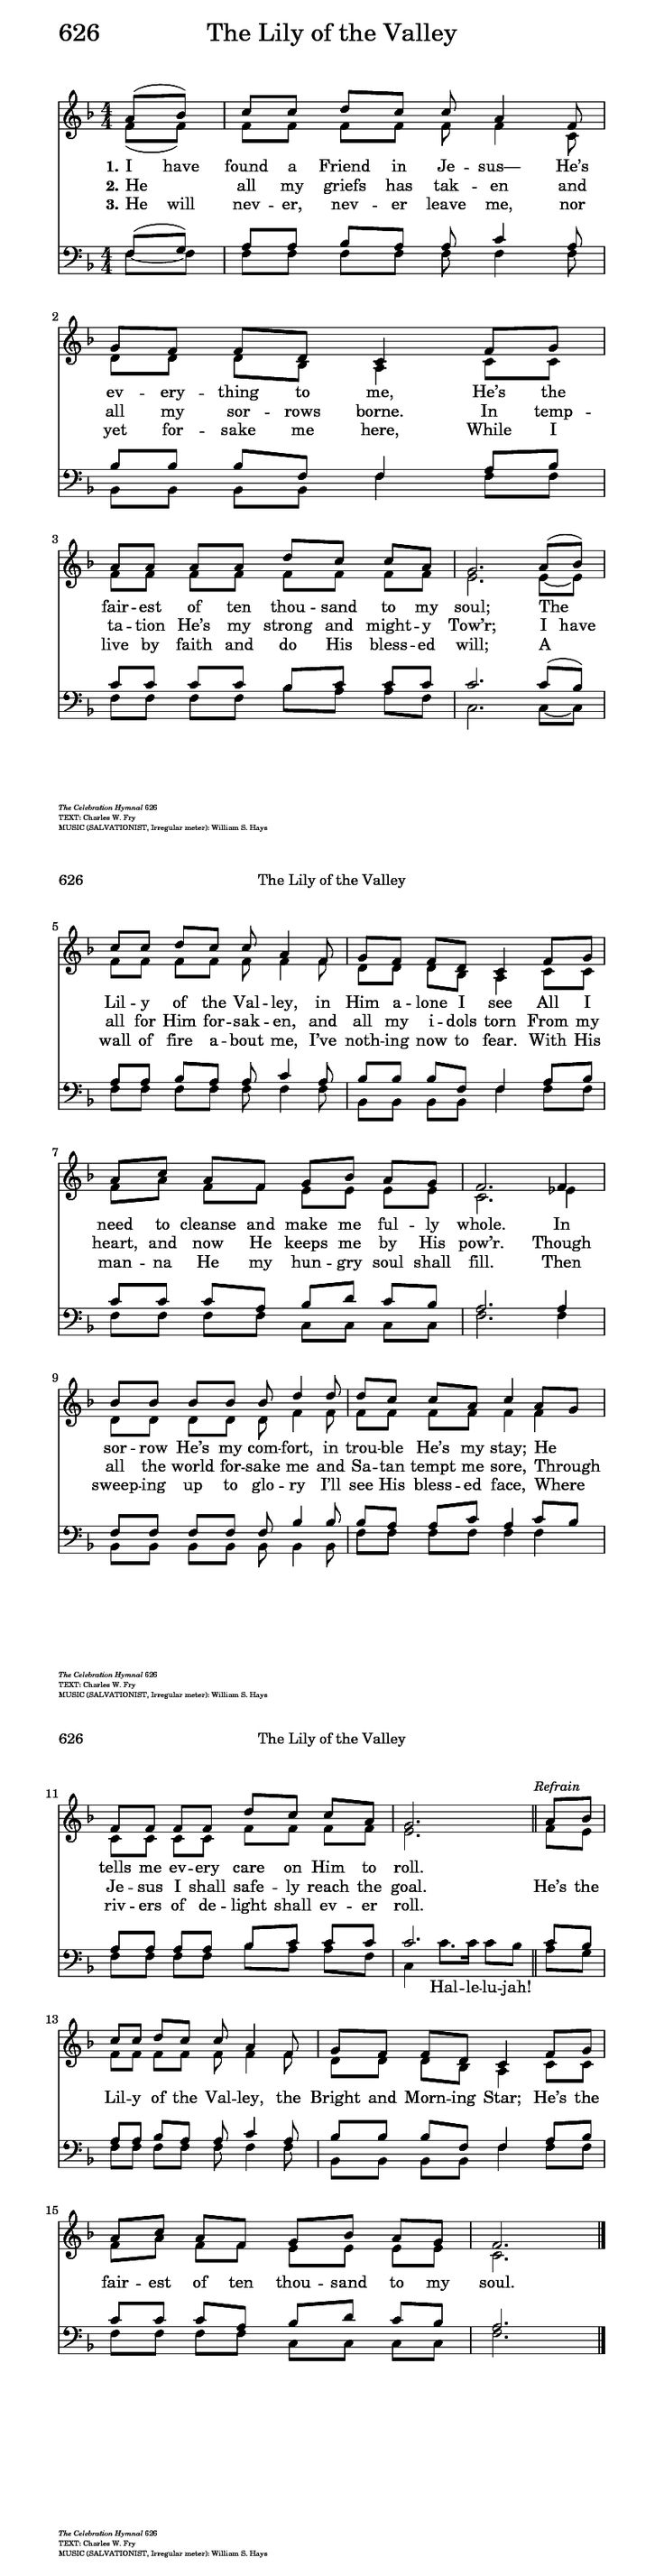 The Lily of the Valley - Hymnary.org